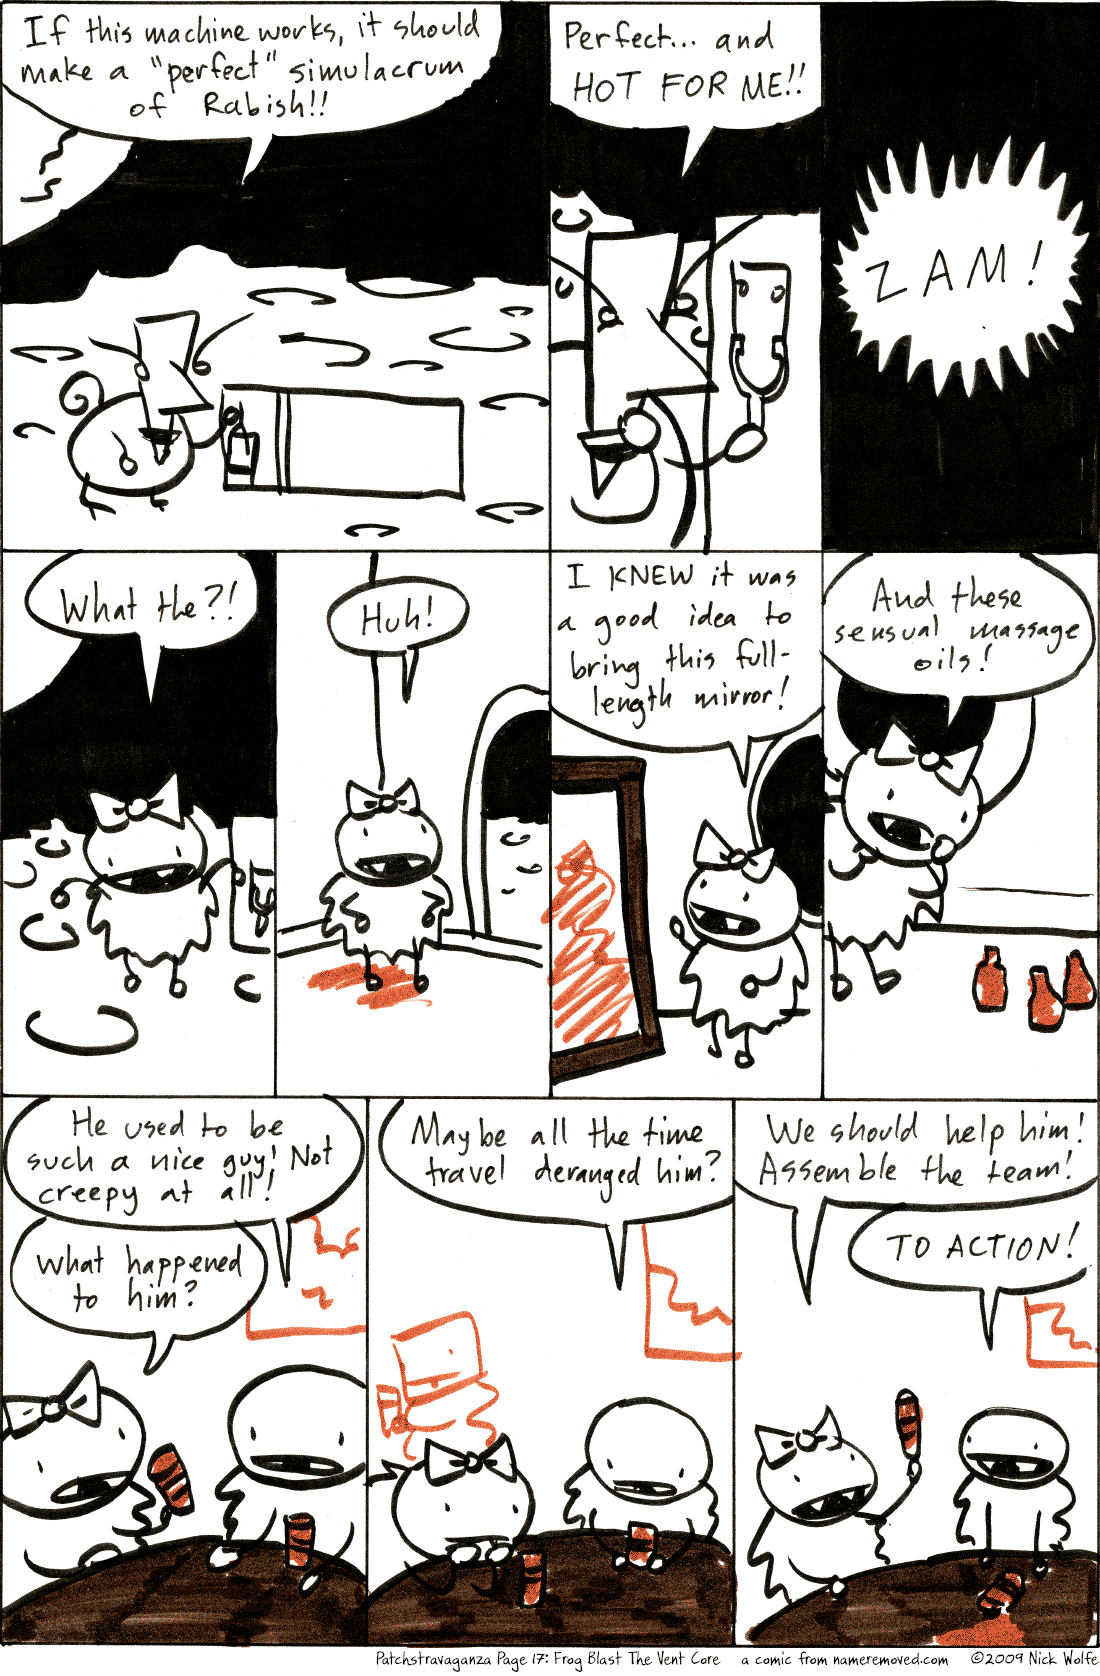 Patchstravaganza Page 17: Frog Blast The Vent Core